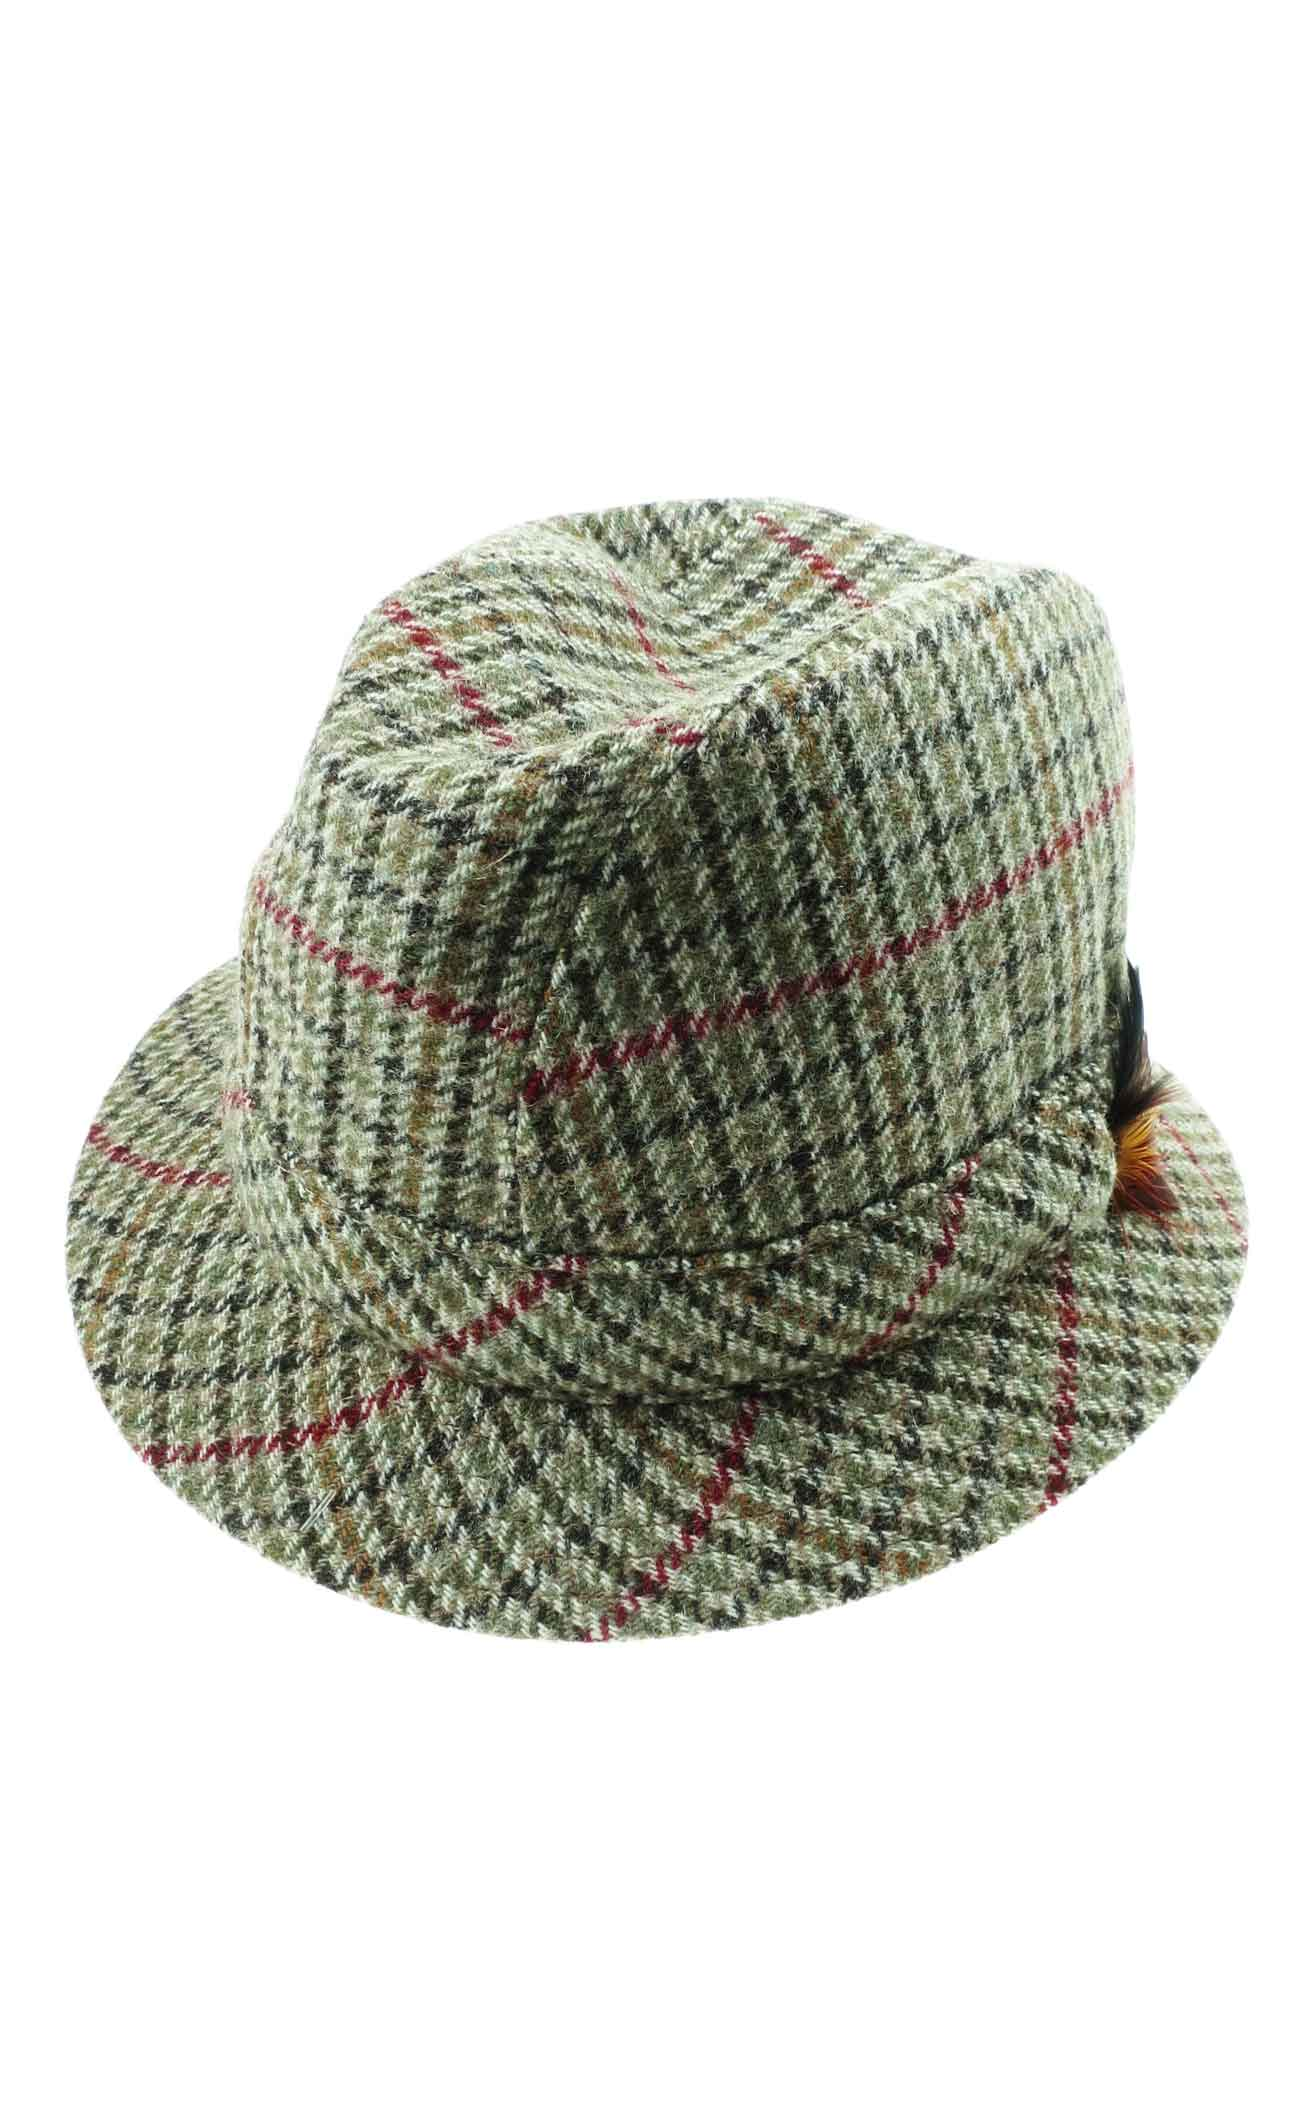 Tweed Trilby Hat by Scotweb 17cfd452d7a3